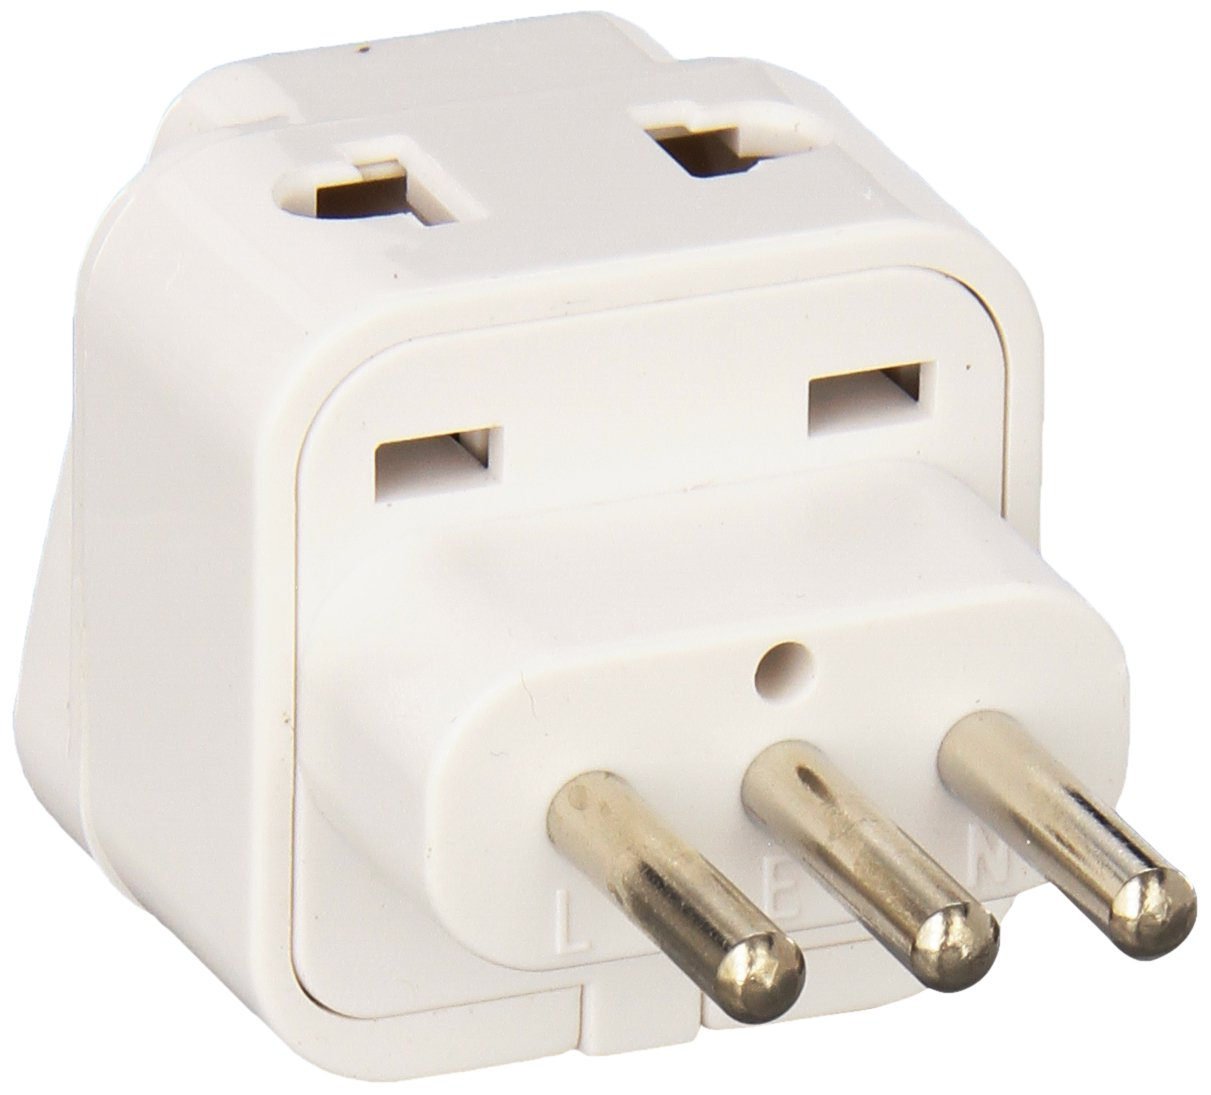 CKITZE BA-12AN Grounded Universal 2 in 1 Plug Adapter Type L for Italy, Uruguay & more - CE Certified